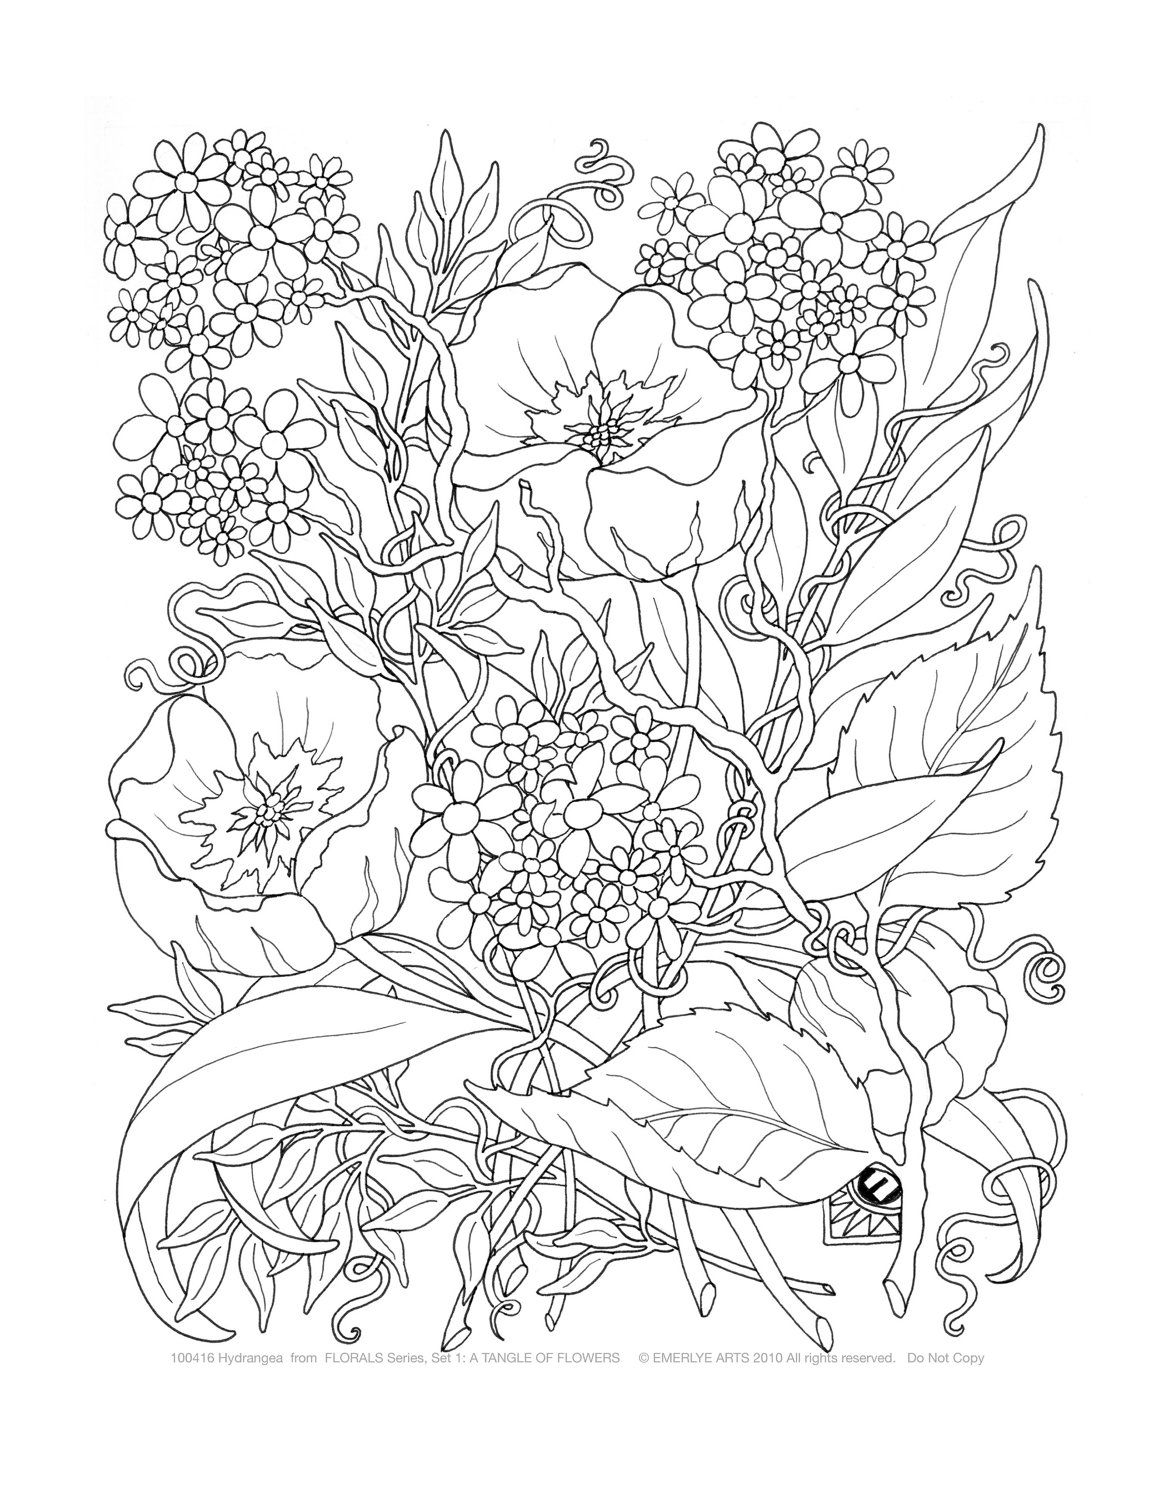 Free coloring pages online adults - Coloring Pages For Adults Printable Coloring Pages For Adults Free Coloring Pages For Adults Online Coloring Pages For Adults For Adults Teenagers Kids